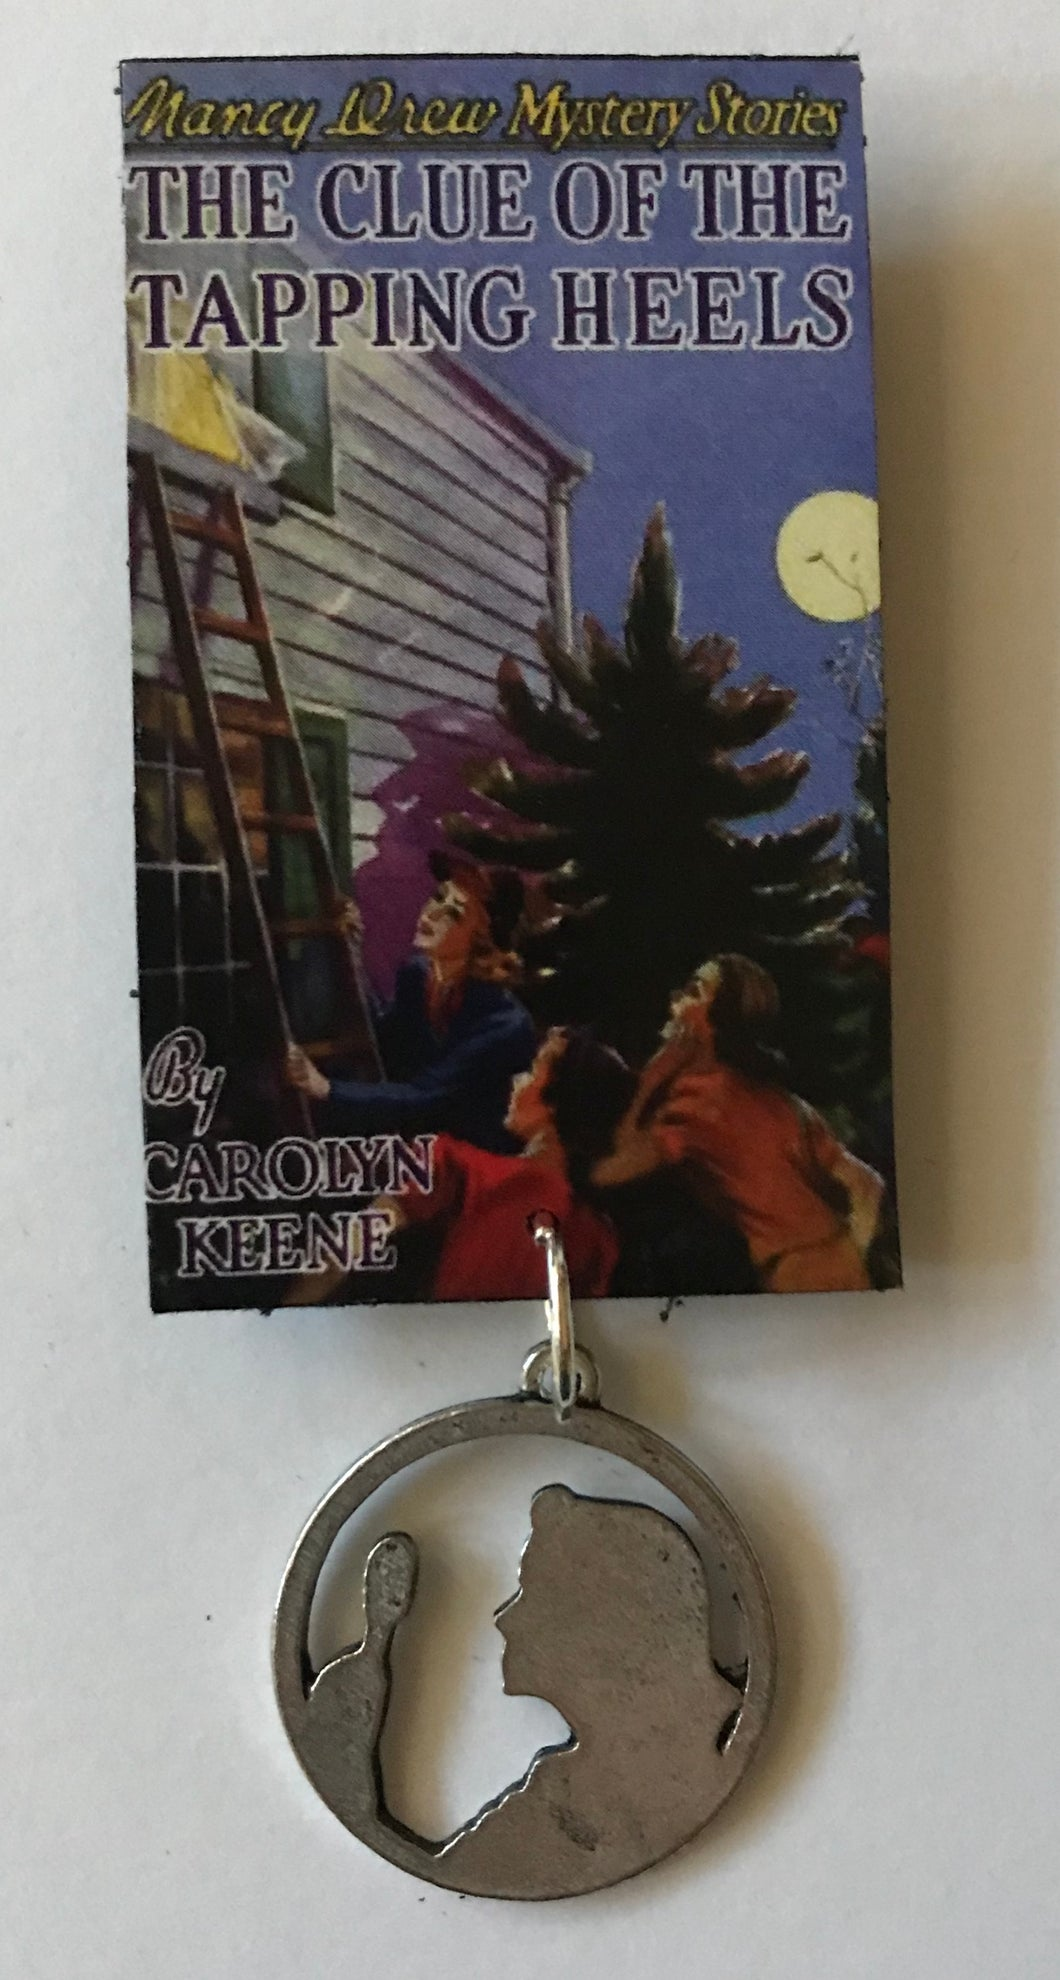 Nancy Drew Book Cover Tapping Heels Pin or Ornament